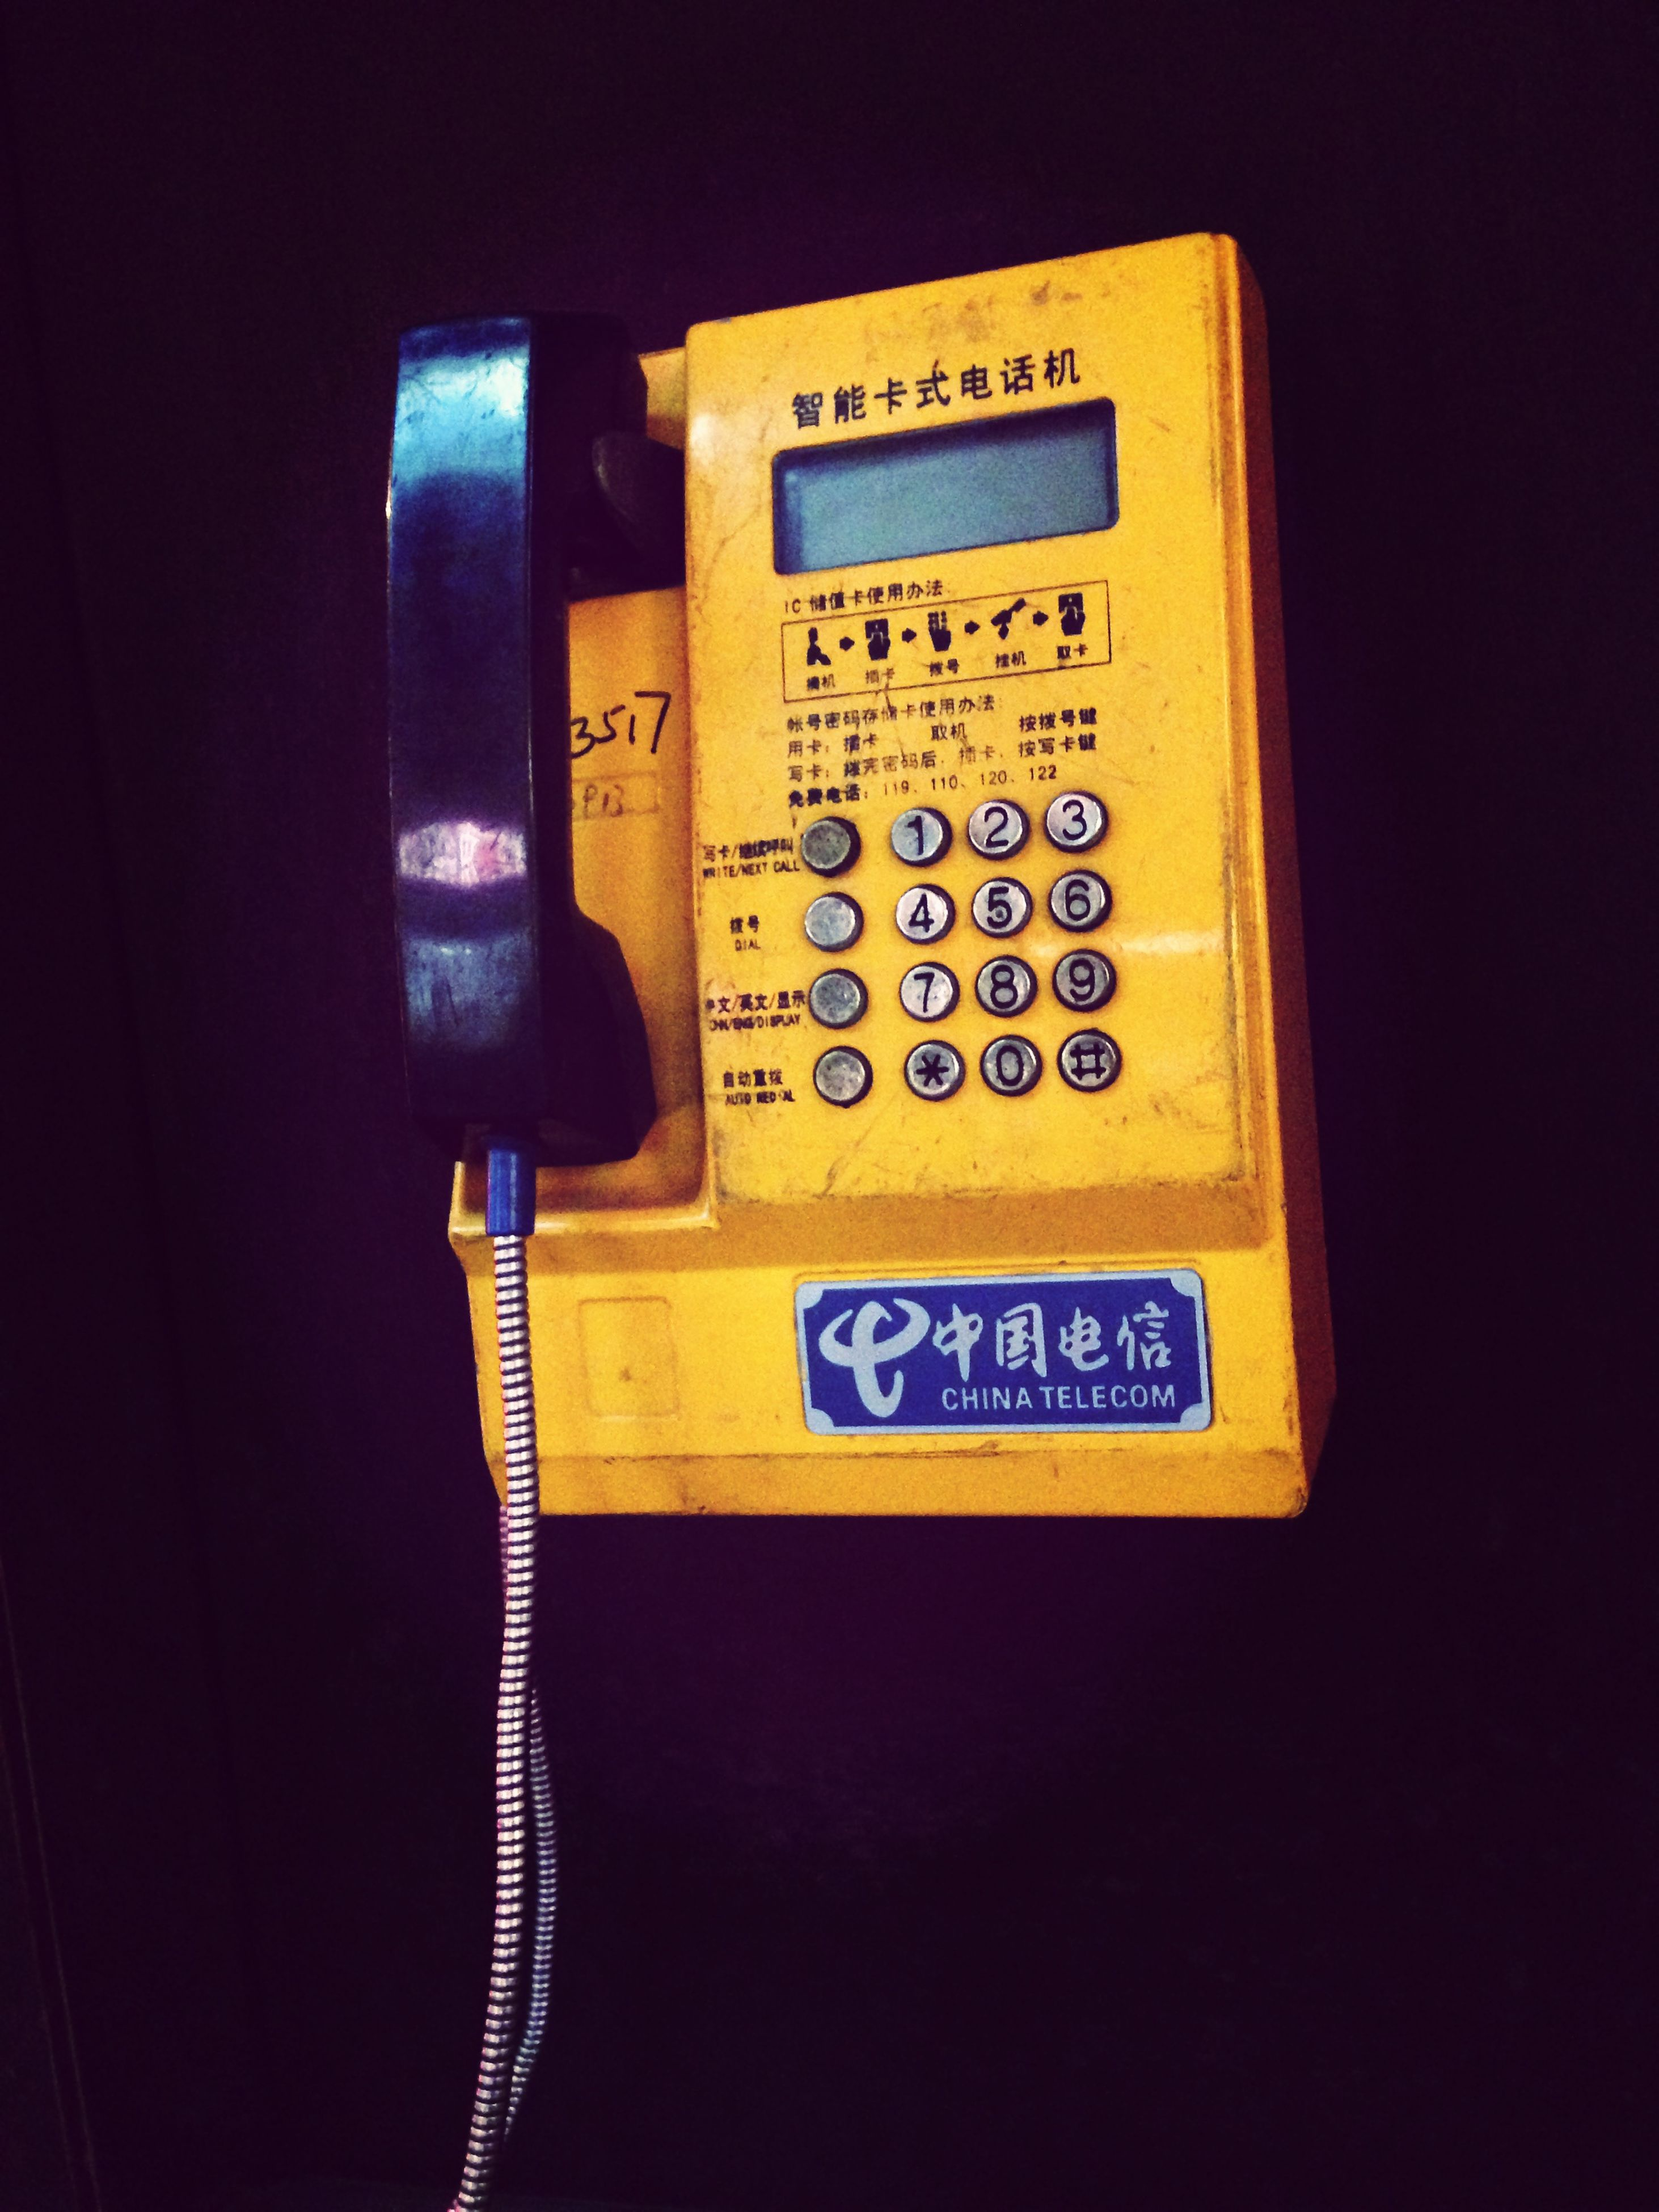 communication, text, western script, indoors, technology, number, yellow, close-up, guidance, non-western script, information sign, information, connection, illuminated, capital letter, sign, no people, control, direction, convenience